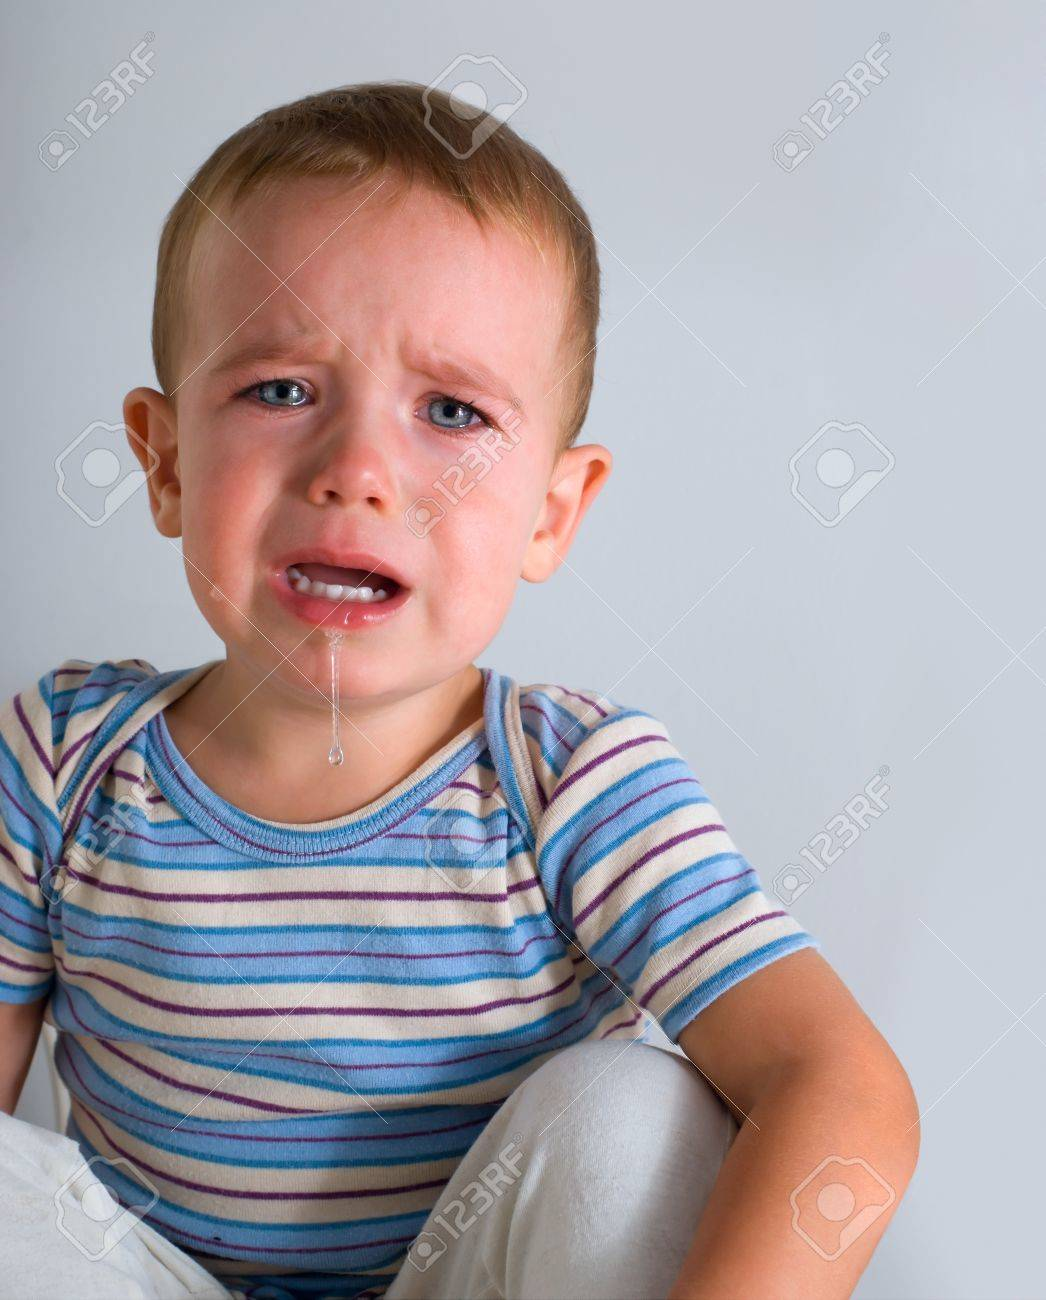 Cute crying boy on gray background Stock Photo - 10615638